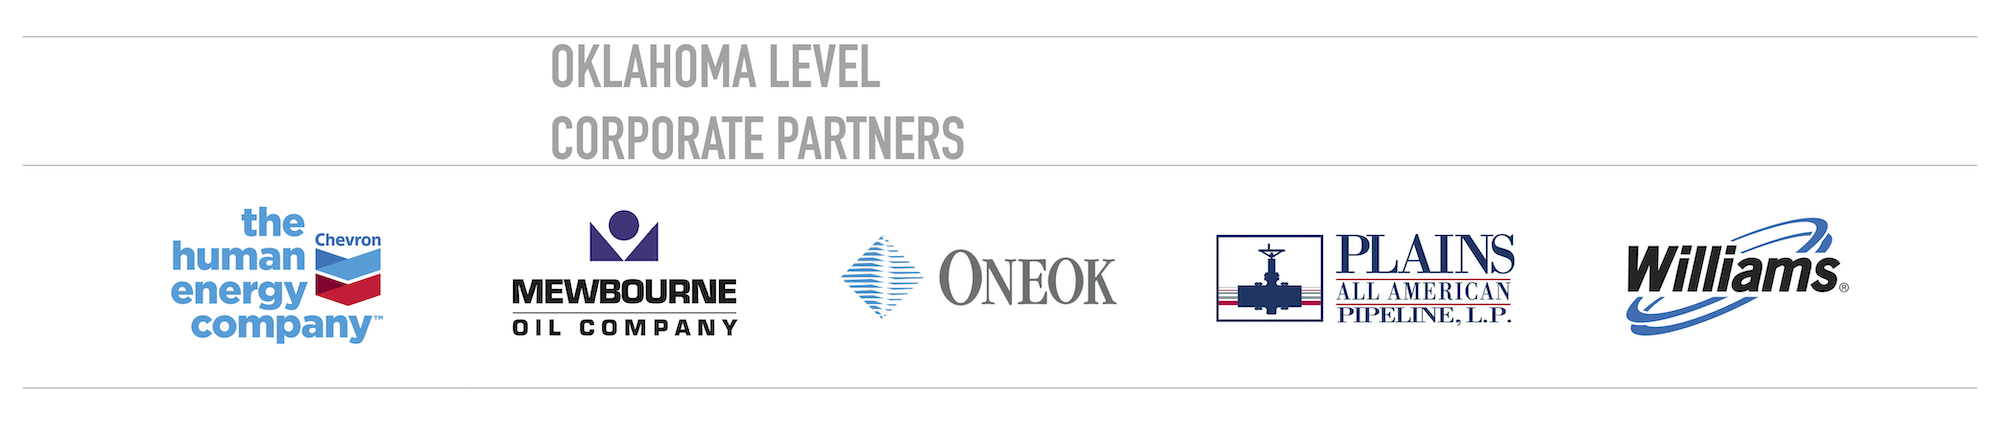 oklahoma-level-corporate-partners